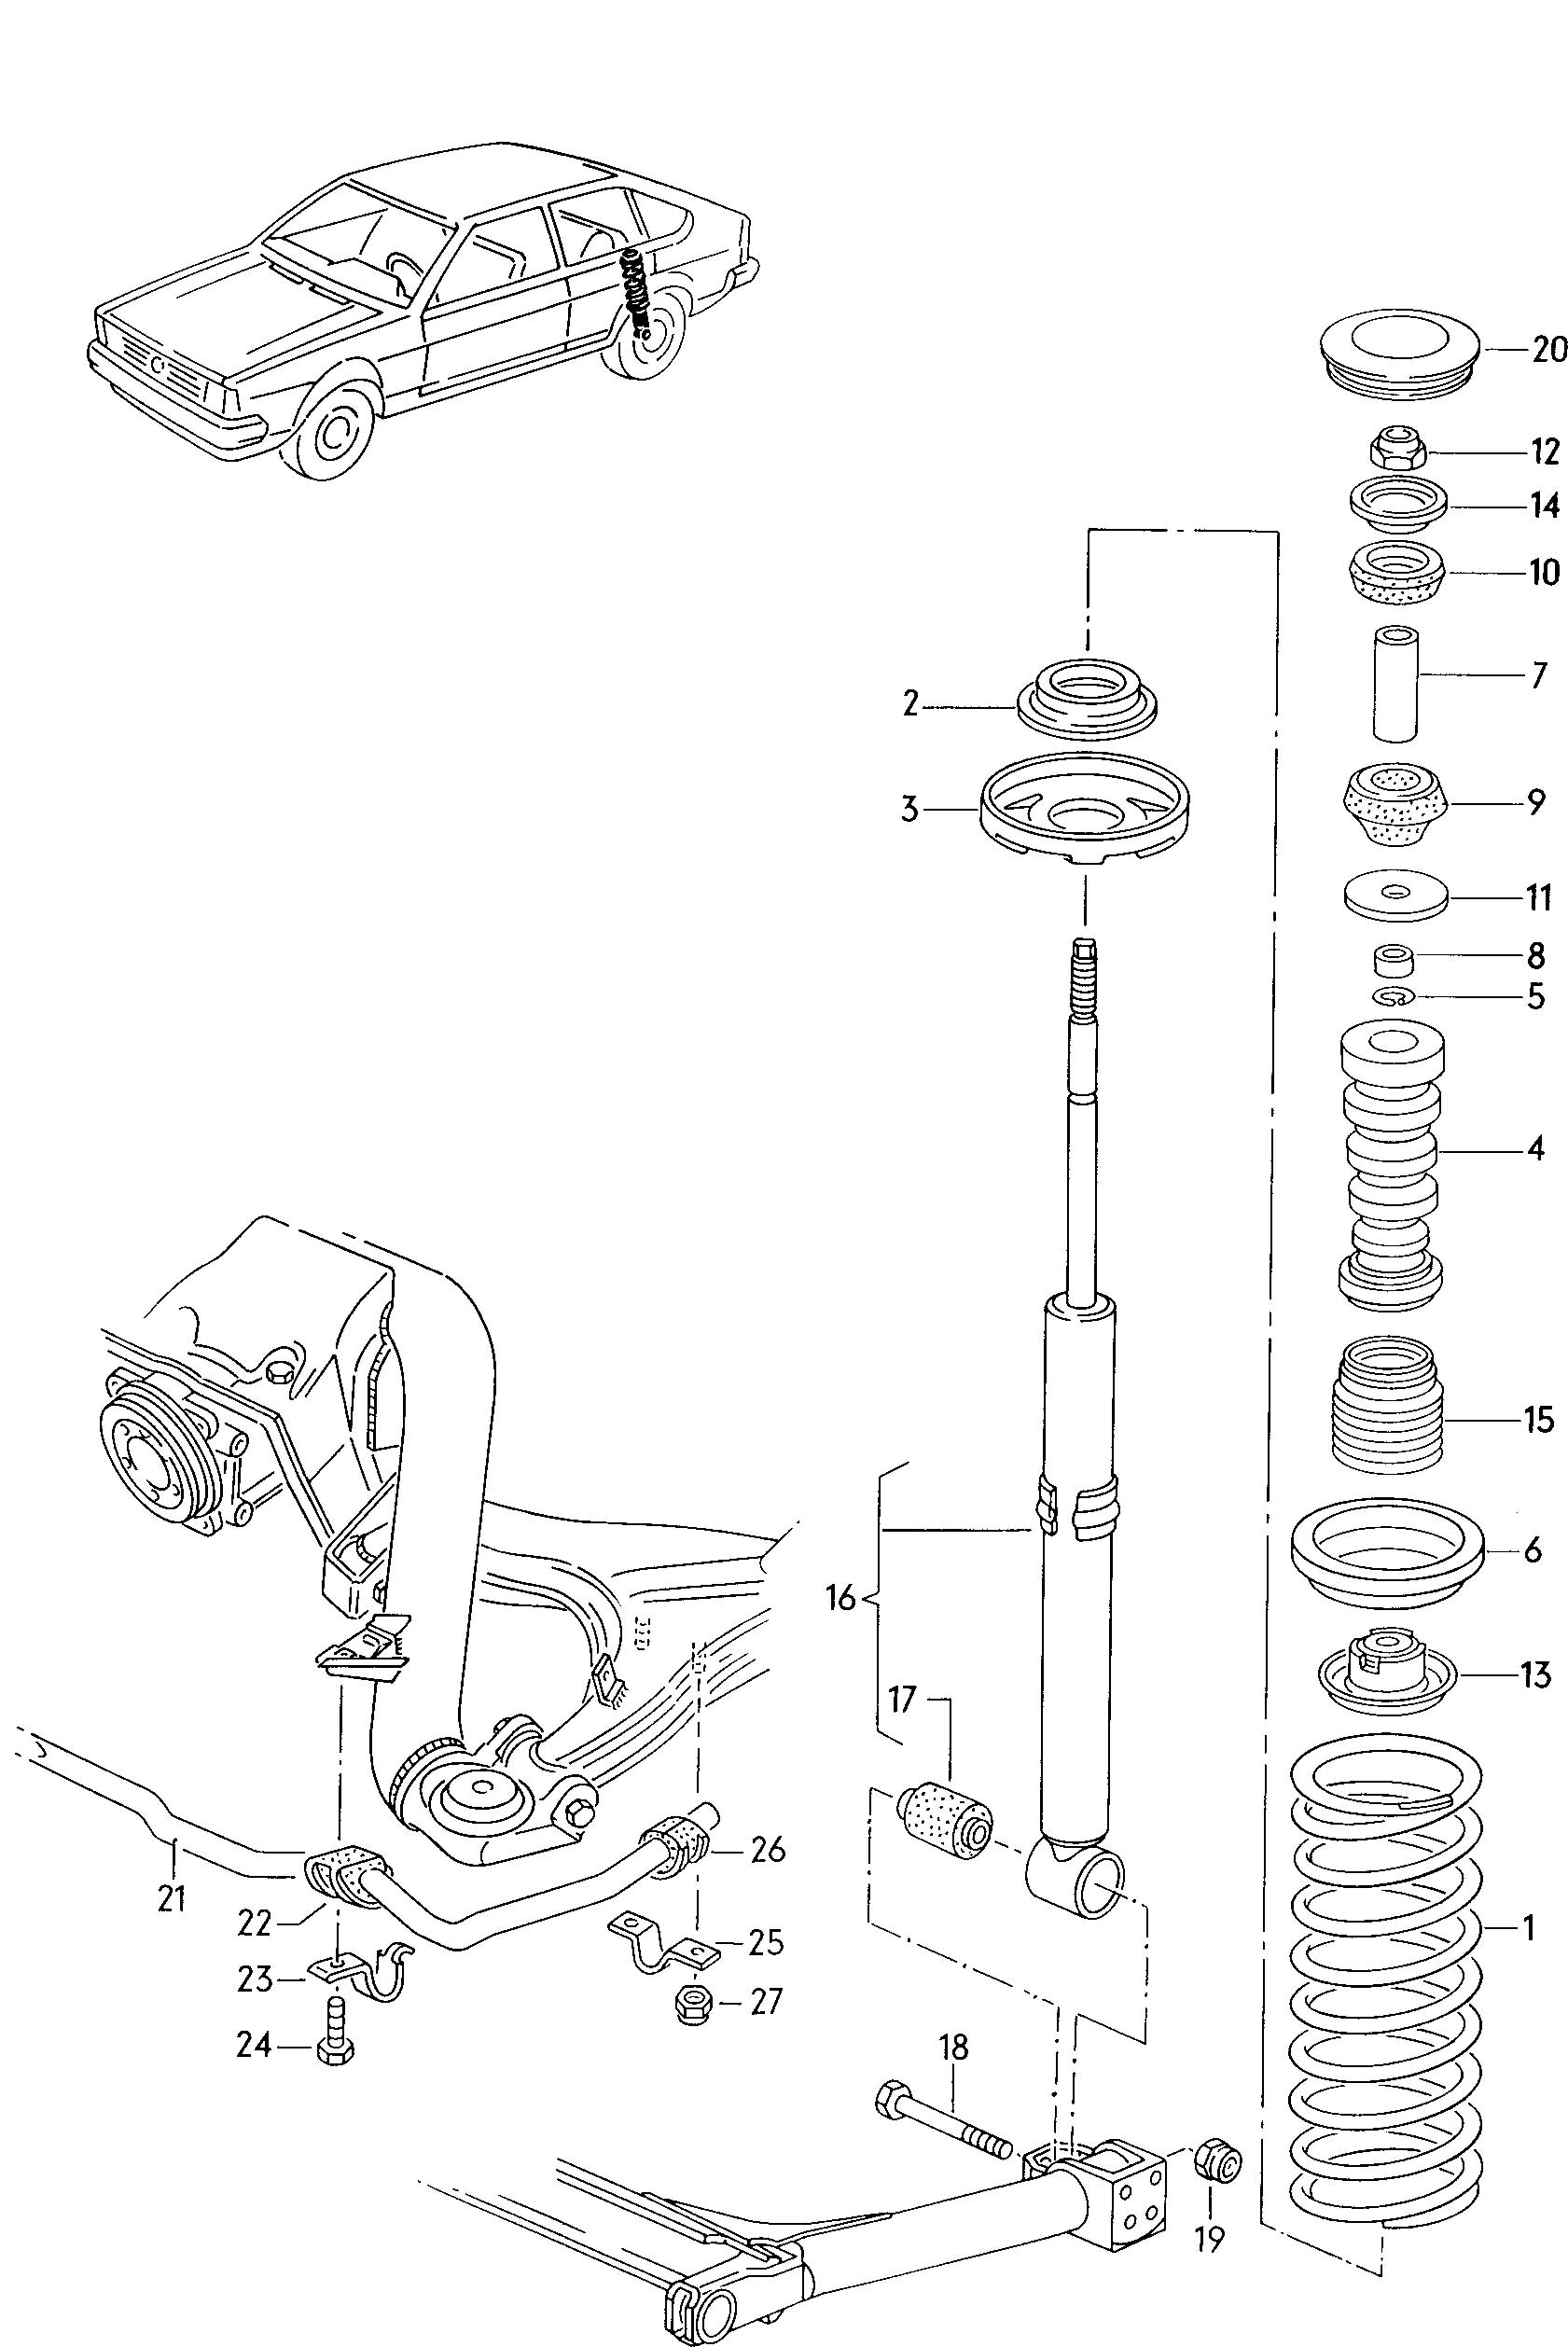 1985 Volkswagen Quantum Suspension stabilizer shock